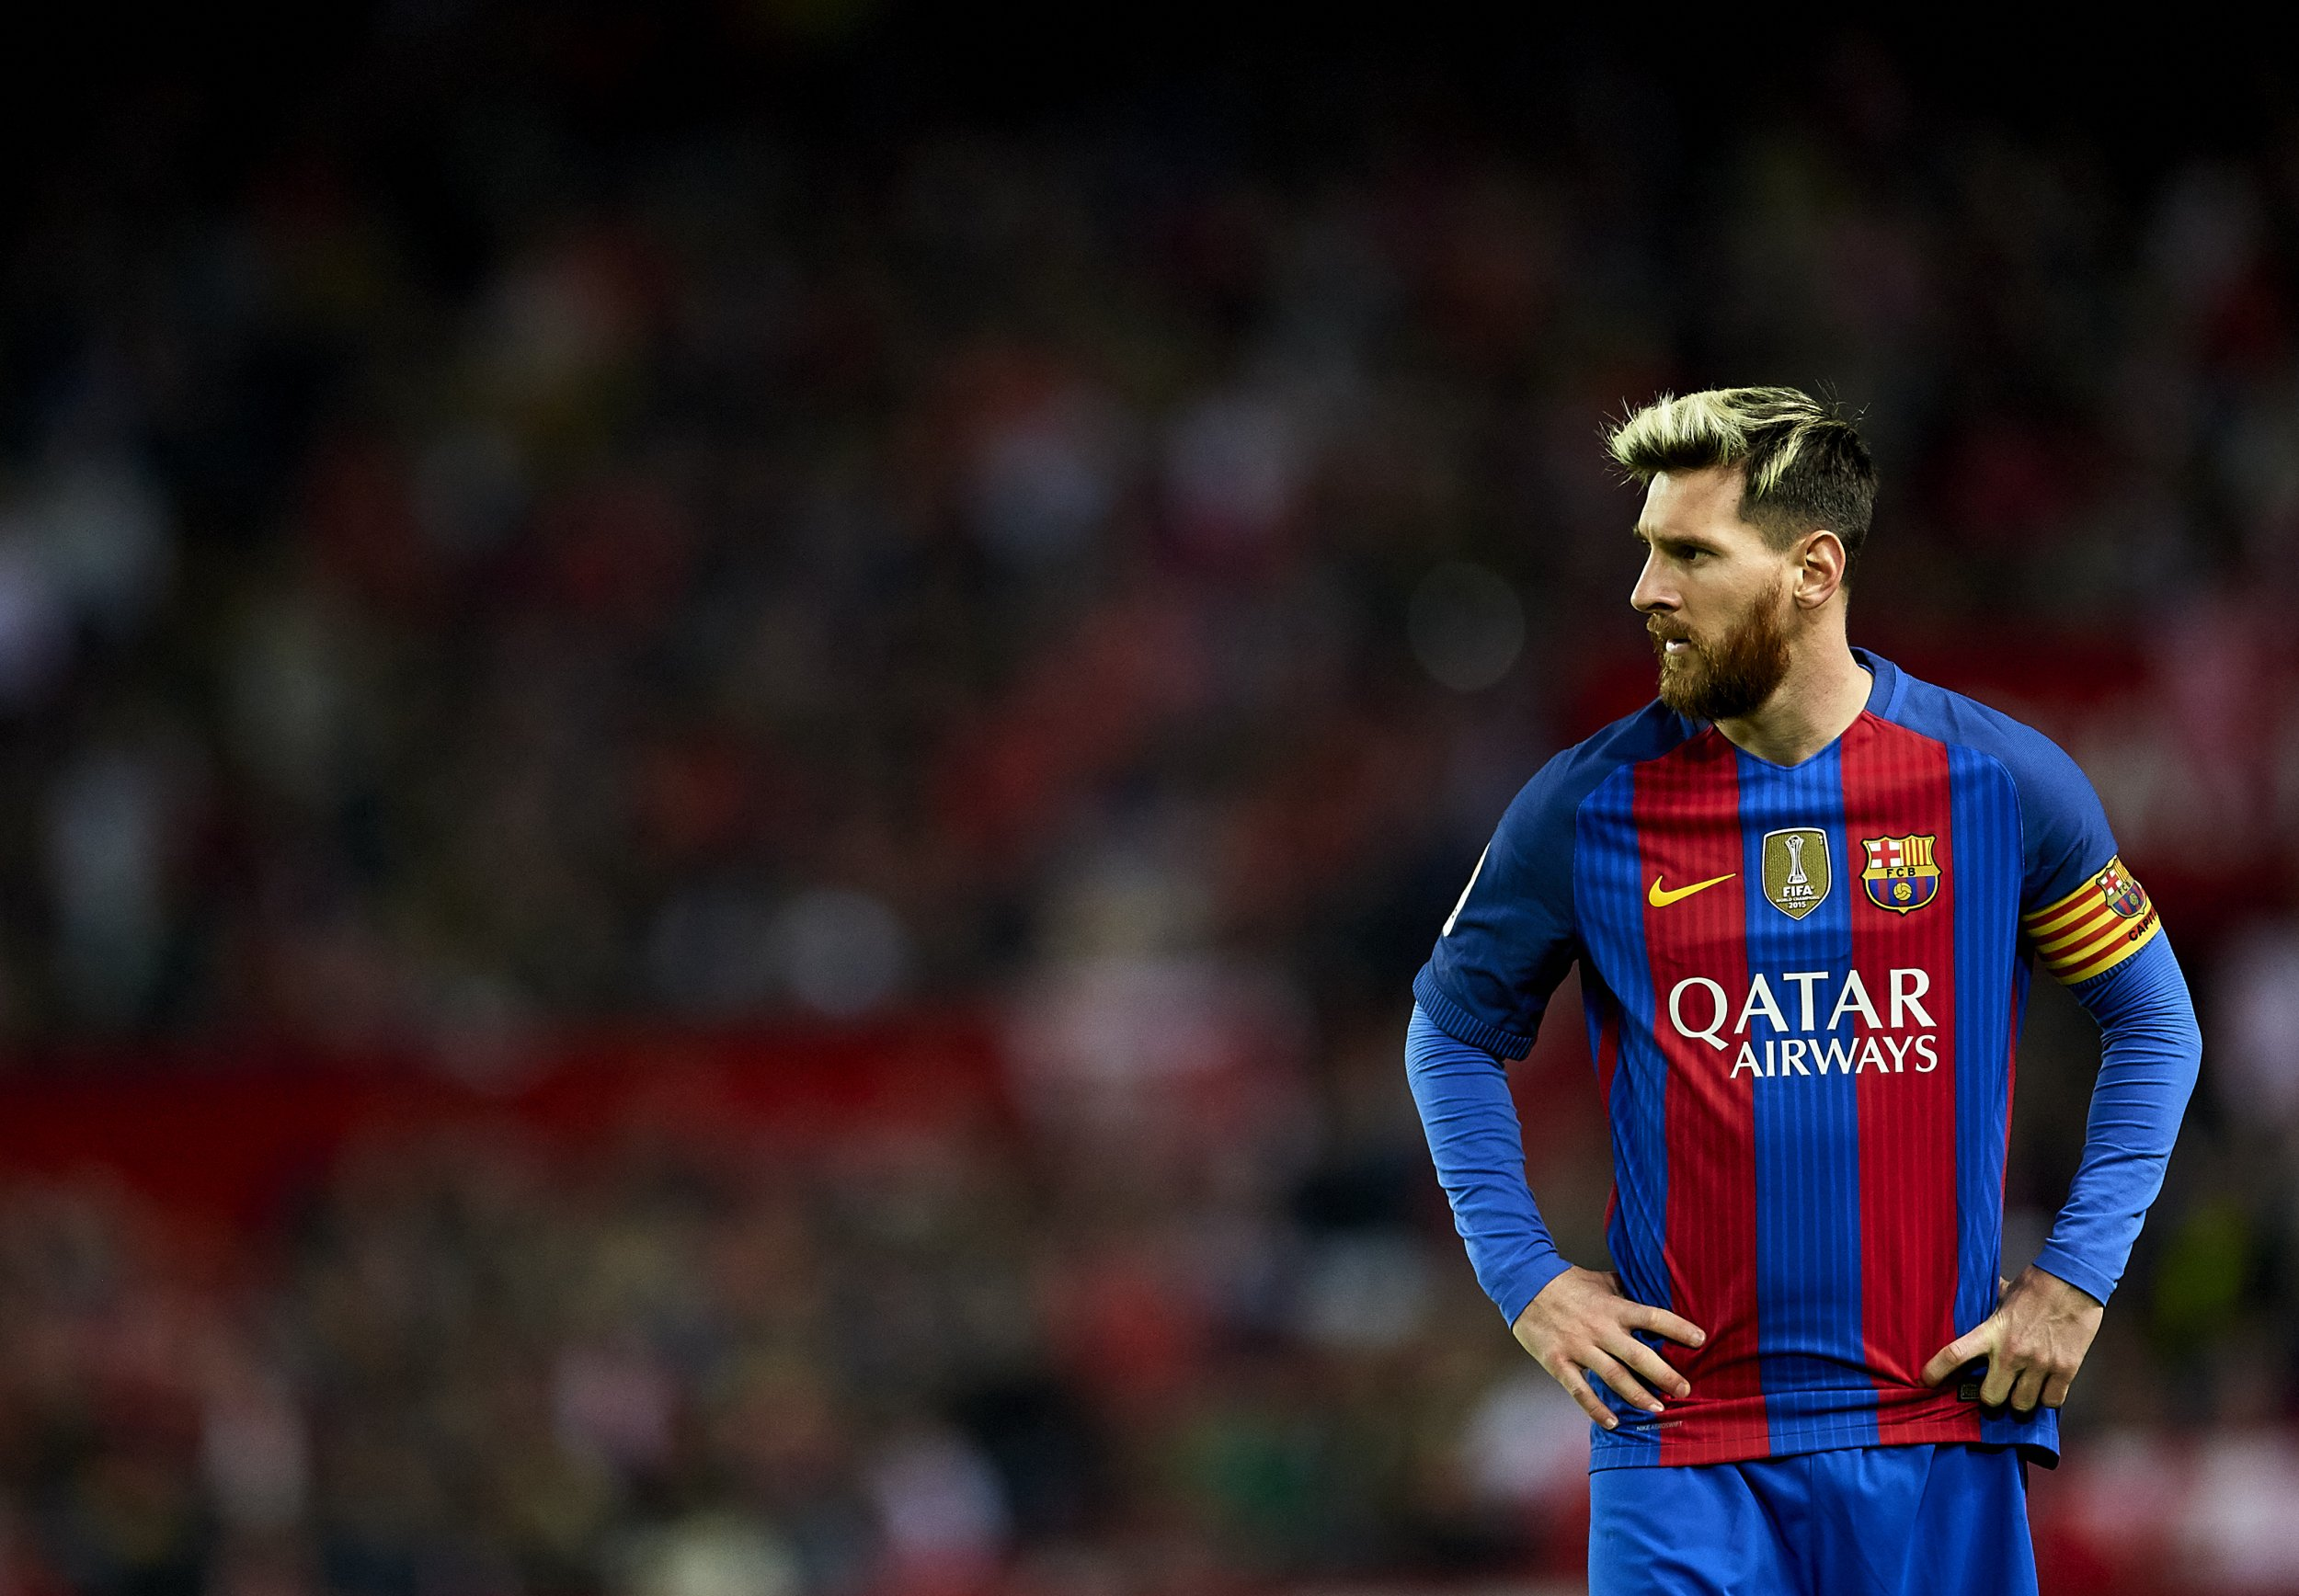 new product 885d0 d27c3 Gerard Pique: Barcelona Star Sends Veiled Message to ...